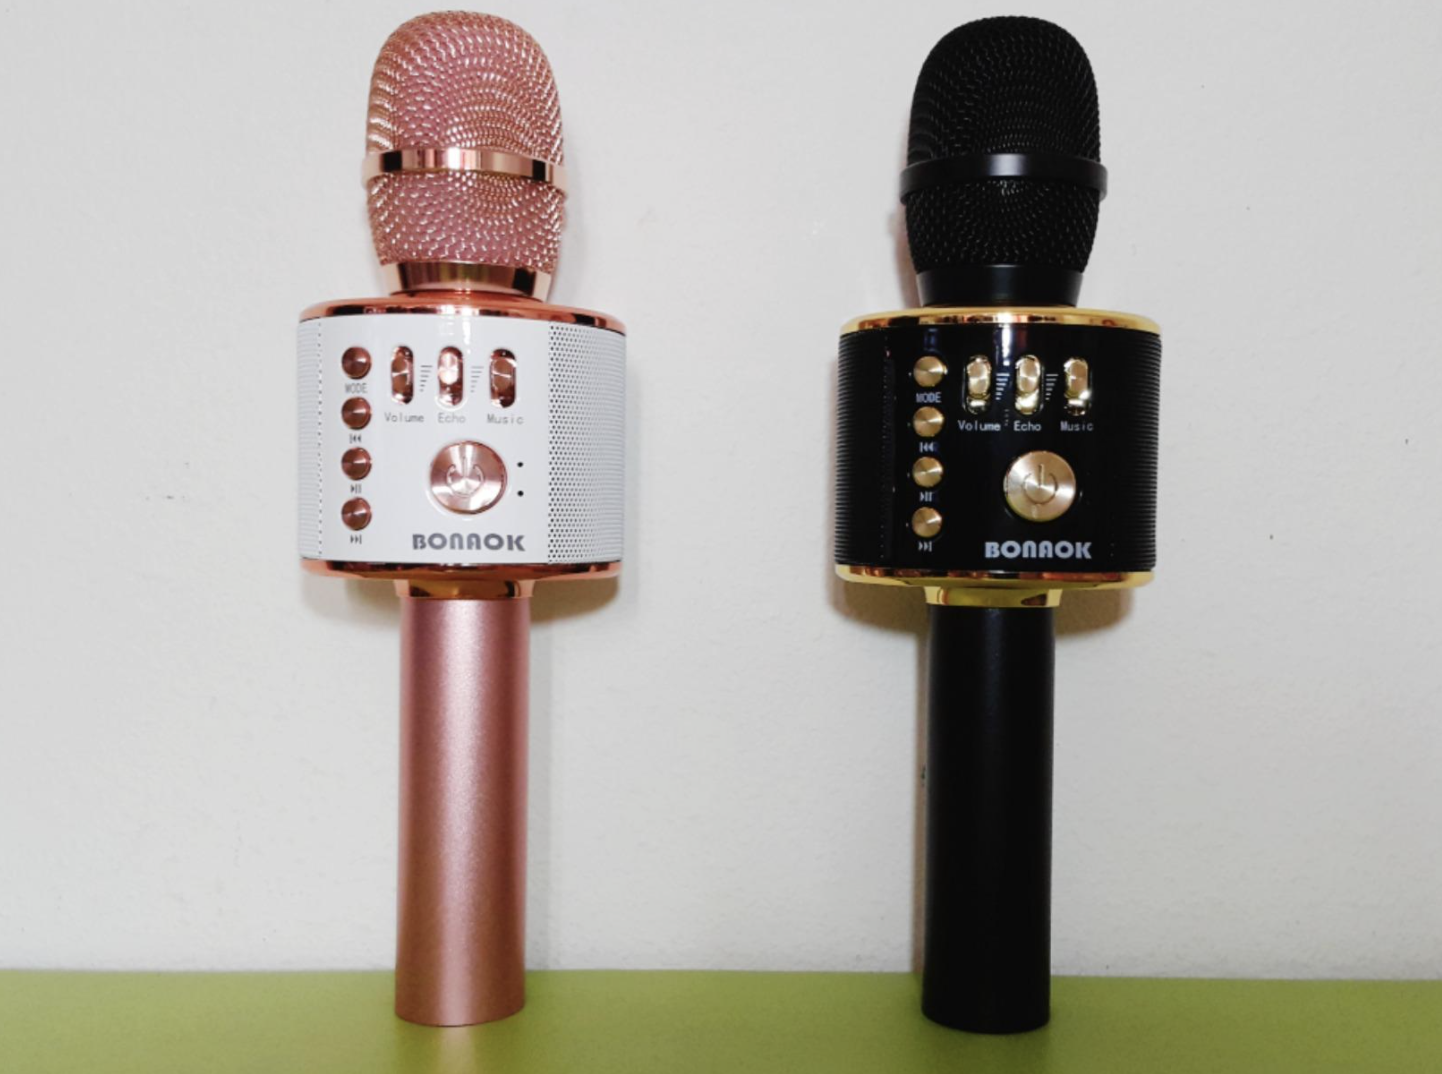 reviewer image of two mics (black and pink) standing next to each other